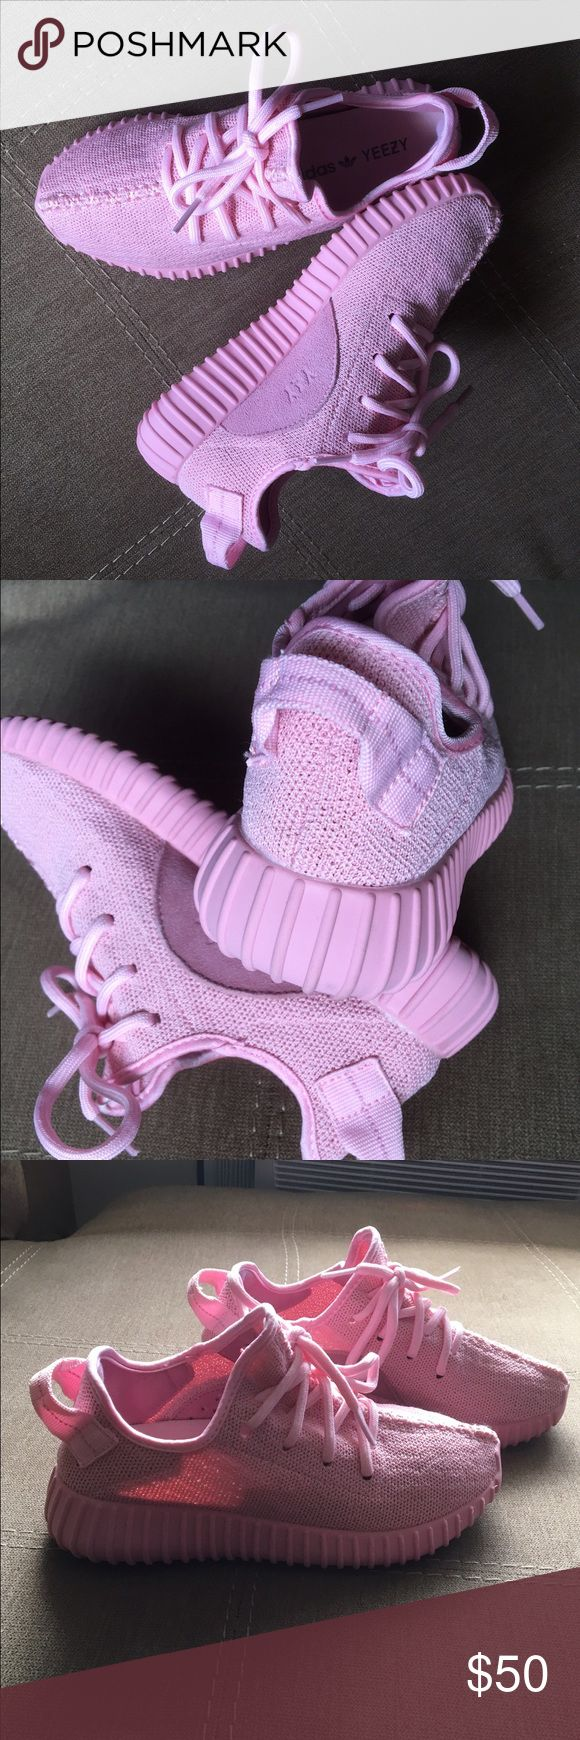 cute pink yeezy for tiny feet. not the real ones for those who like it unique and stylish, im selling this cute pink yeezy size 5.  not a real boost, looks great on feet.  no box as is. Super clean.  tried it on and took a pic.  this is one hot piece of 350's.  what u see is what u get.  don't miss out selling it for a low price. Yeezy Shoes Sneakers